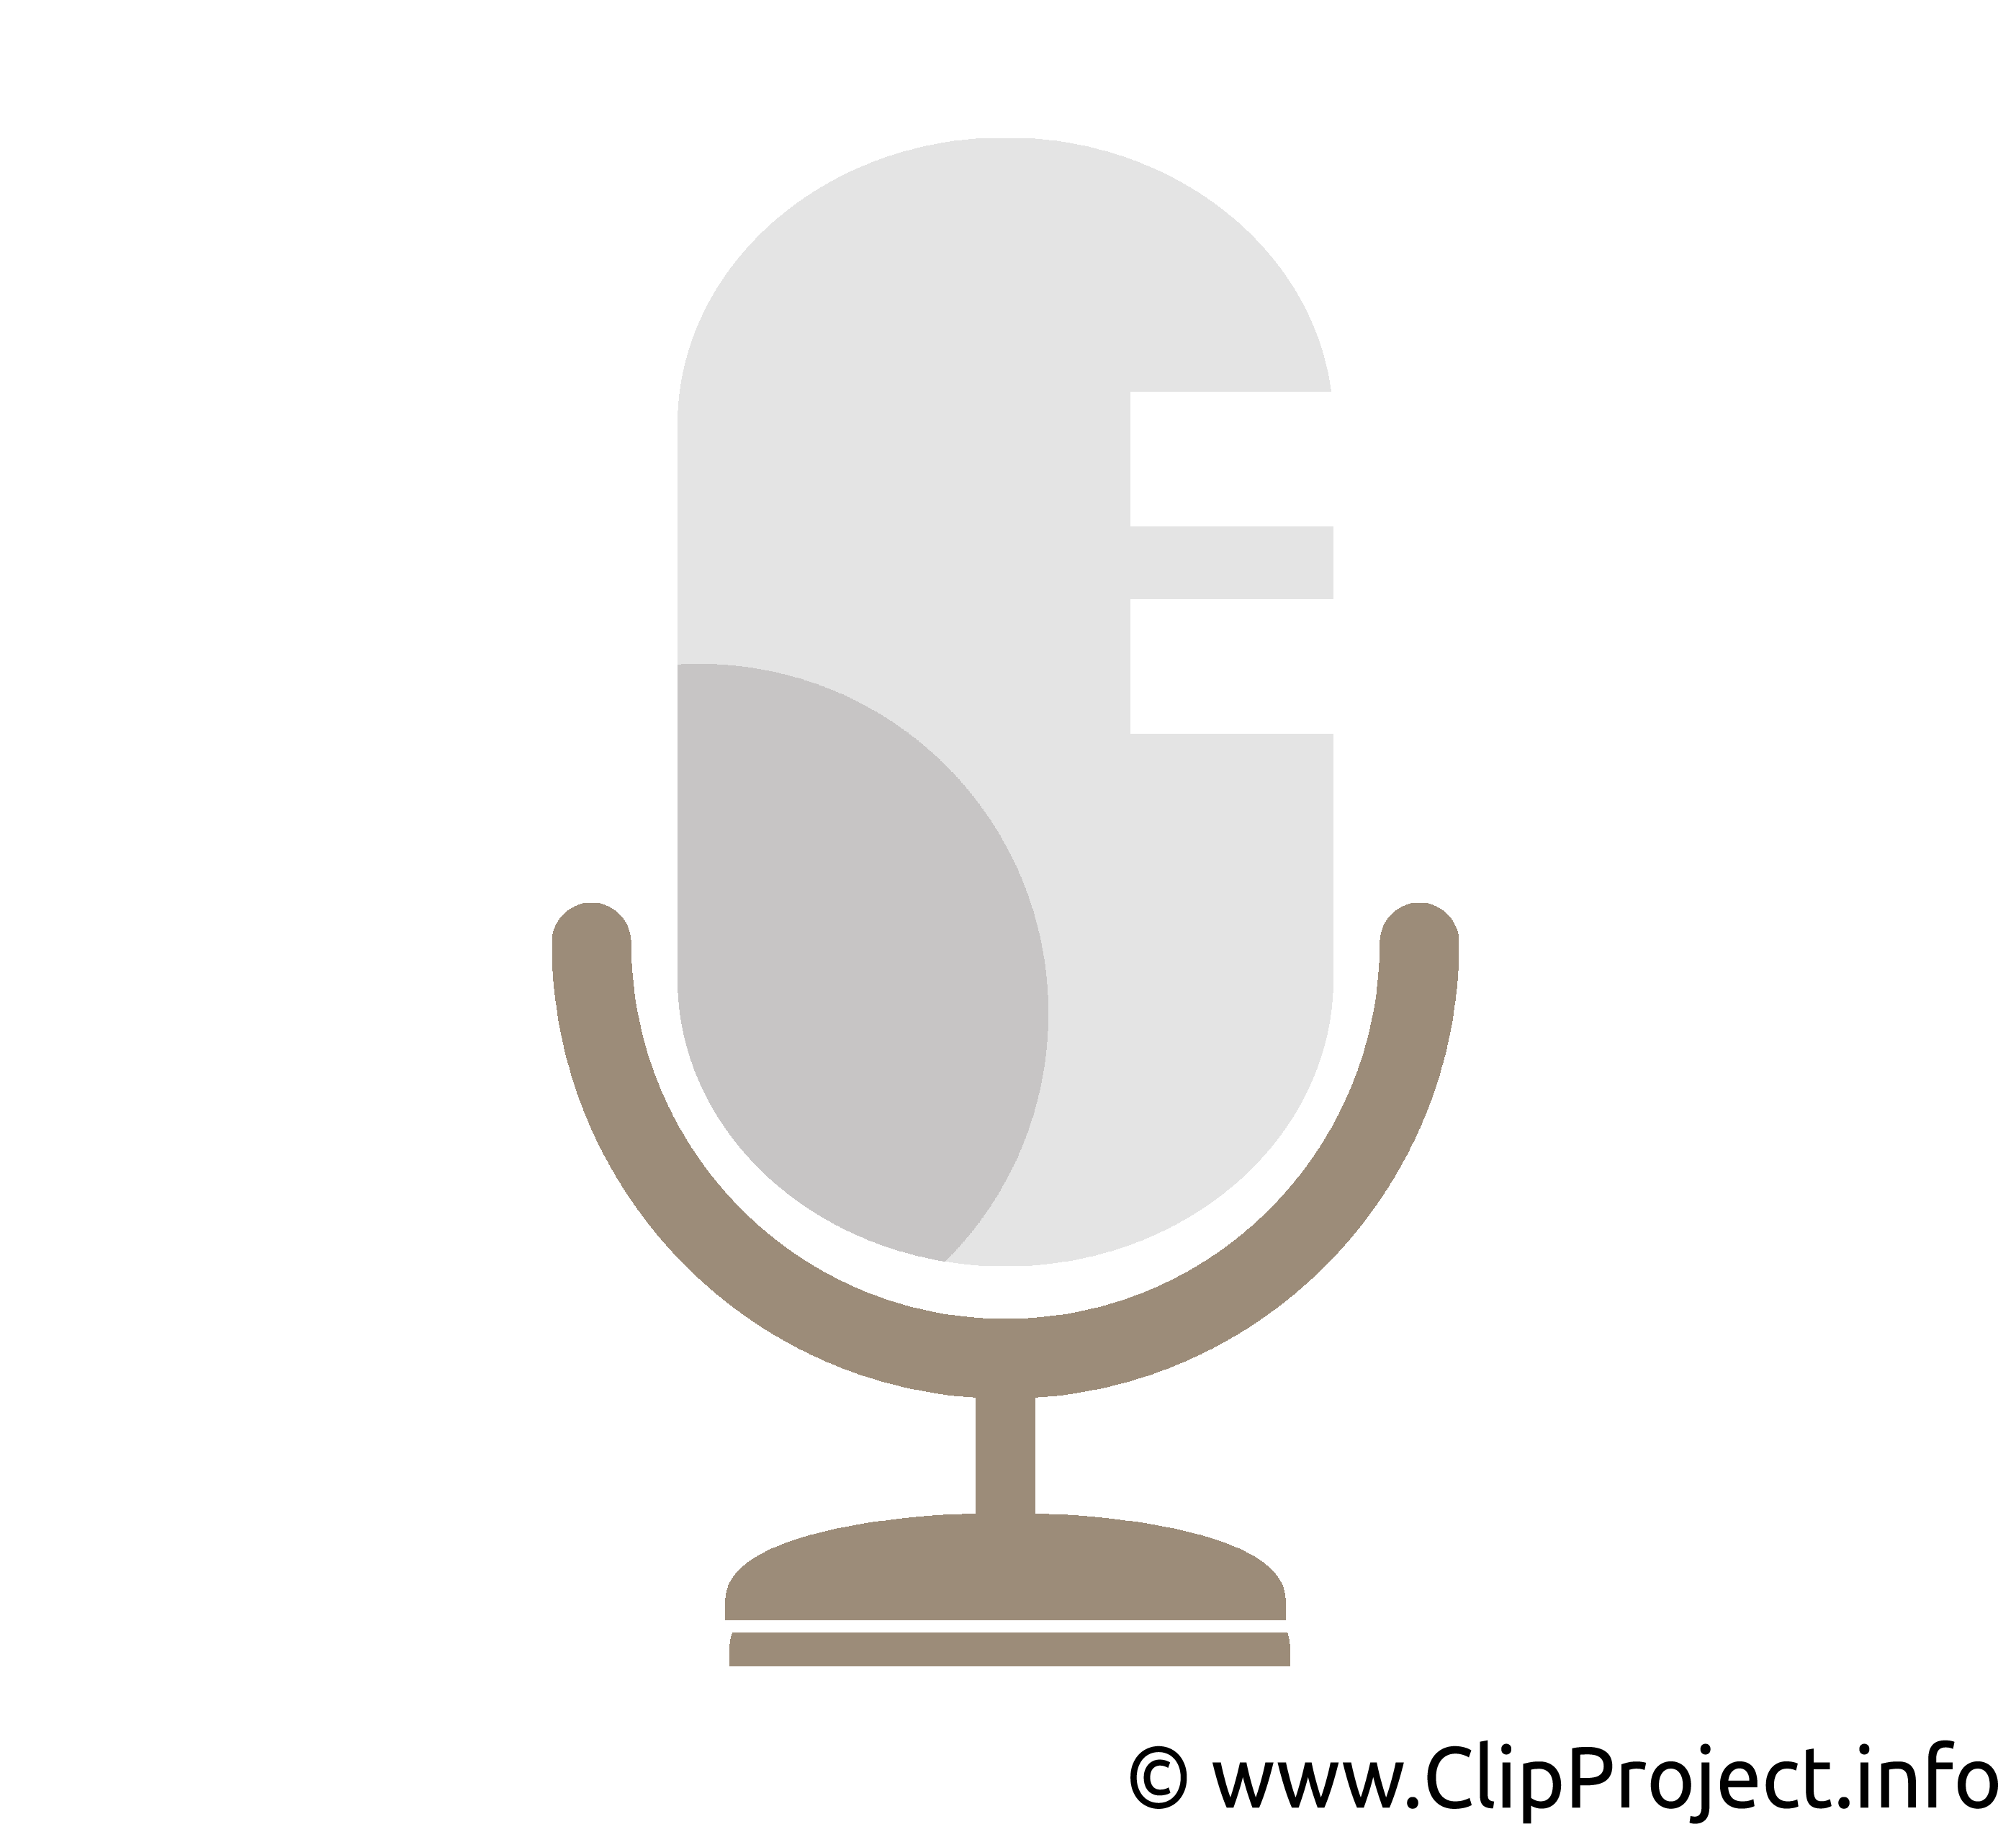 Microphone image gratuite illustration